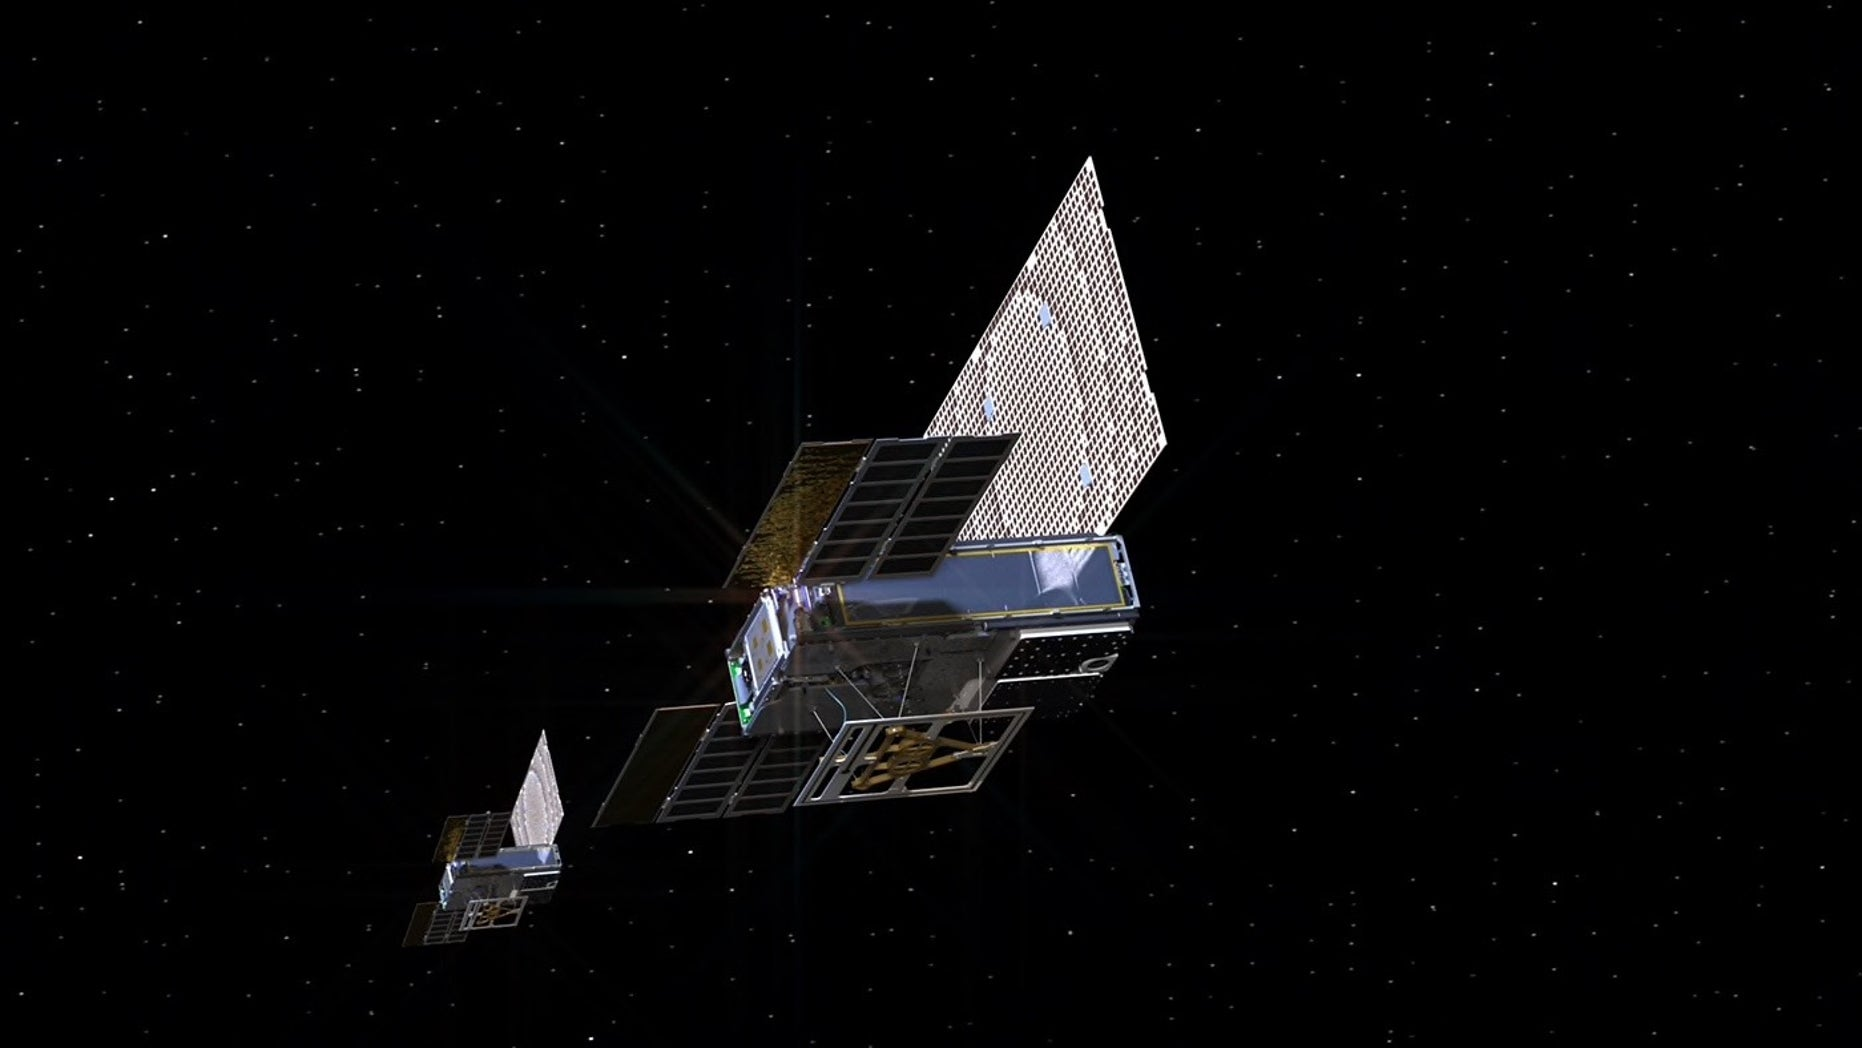 An artist's illustration of the twin Mars Cube One (MarCO) spacecraft deep space. The MarCOs are the first cubesats attempting to fly to another planet.